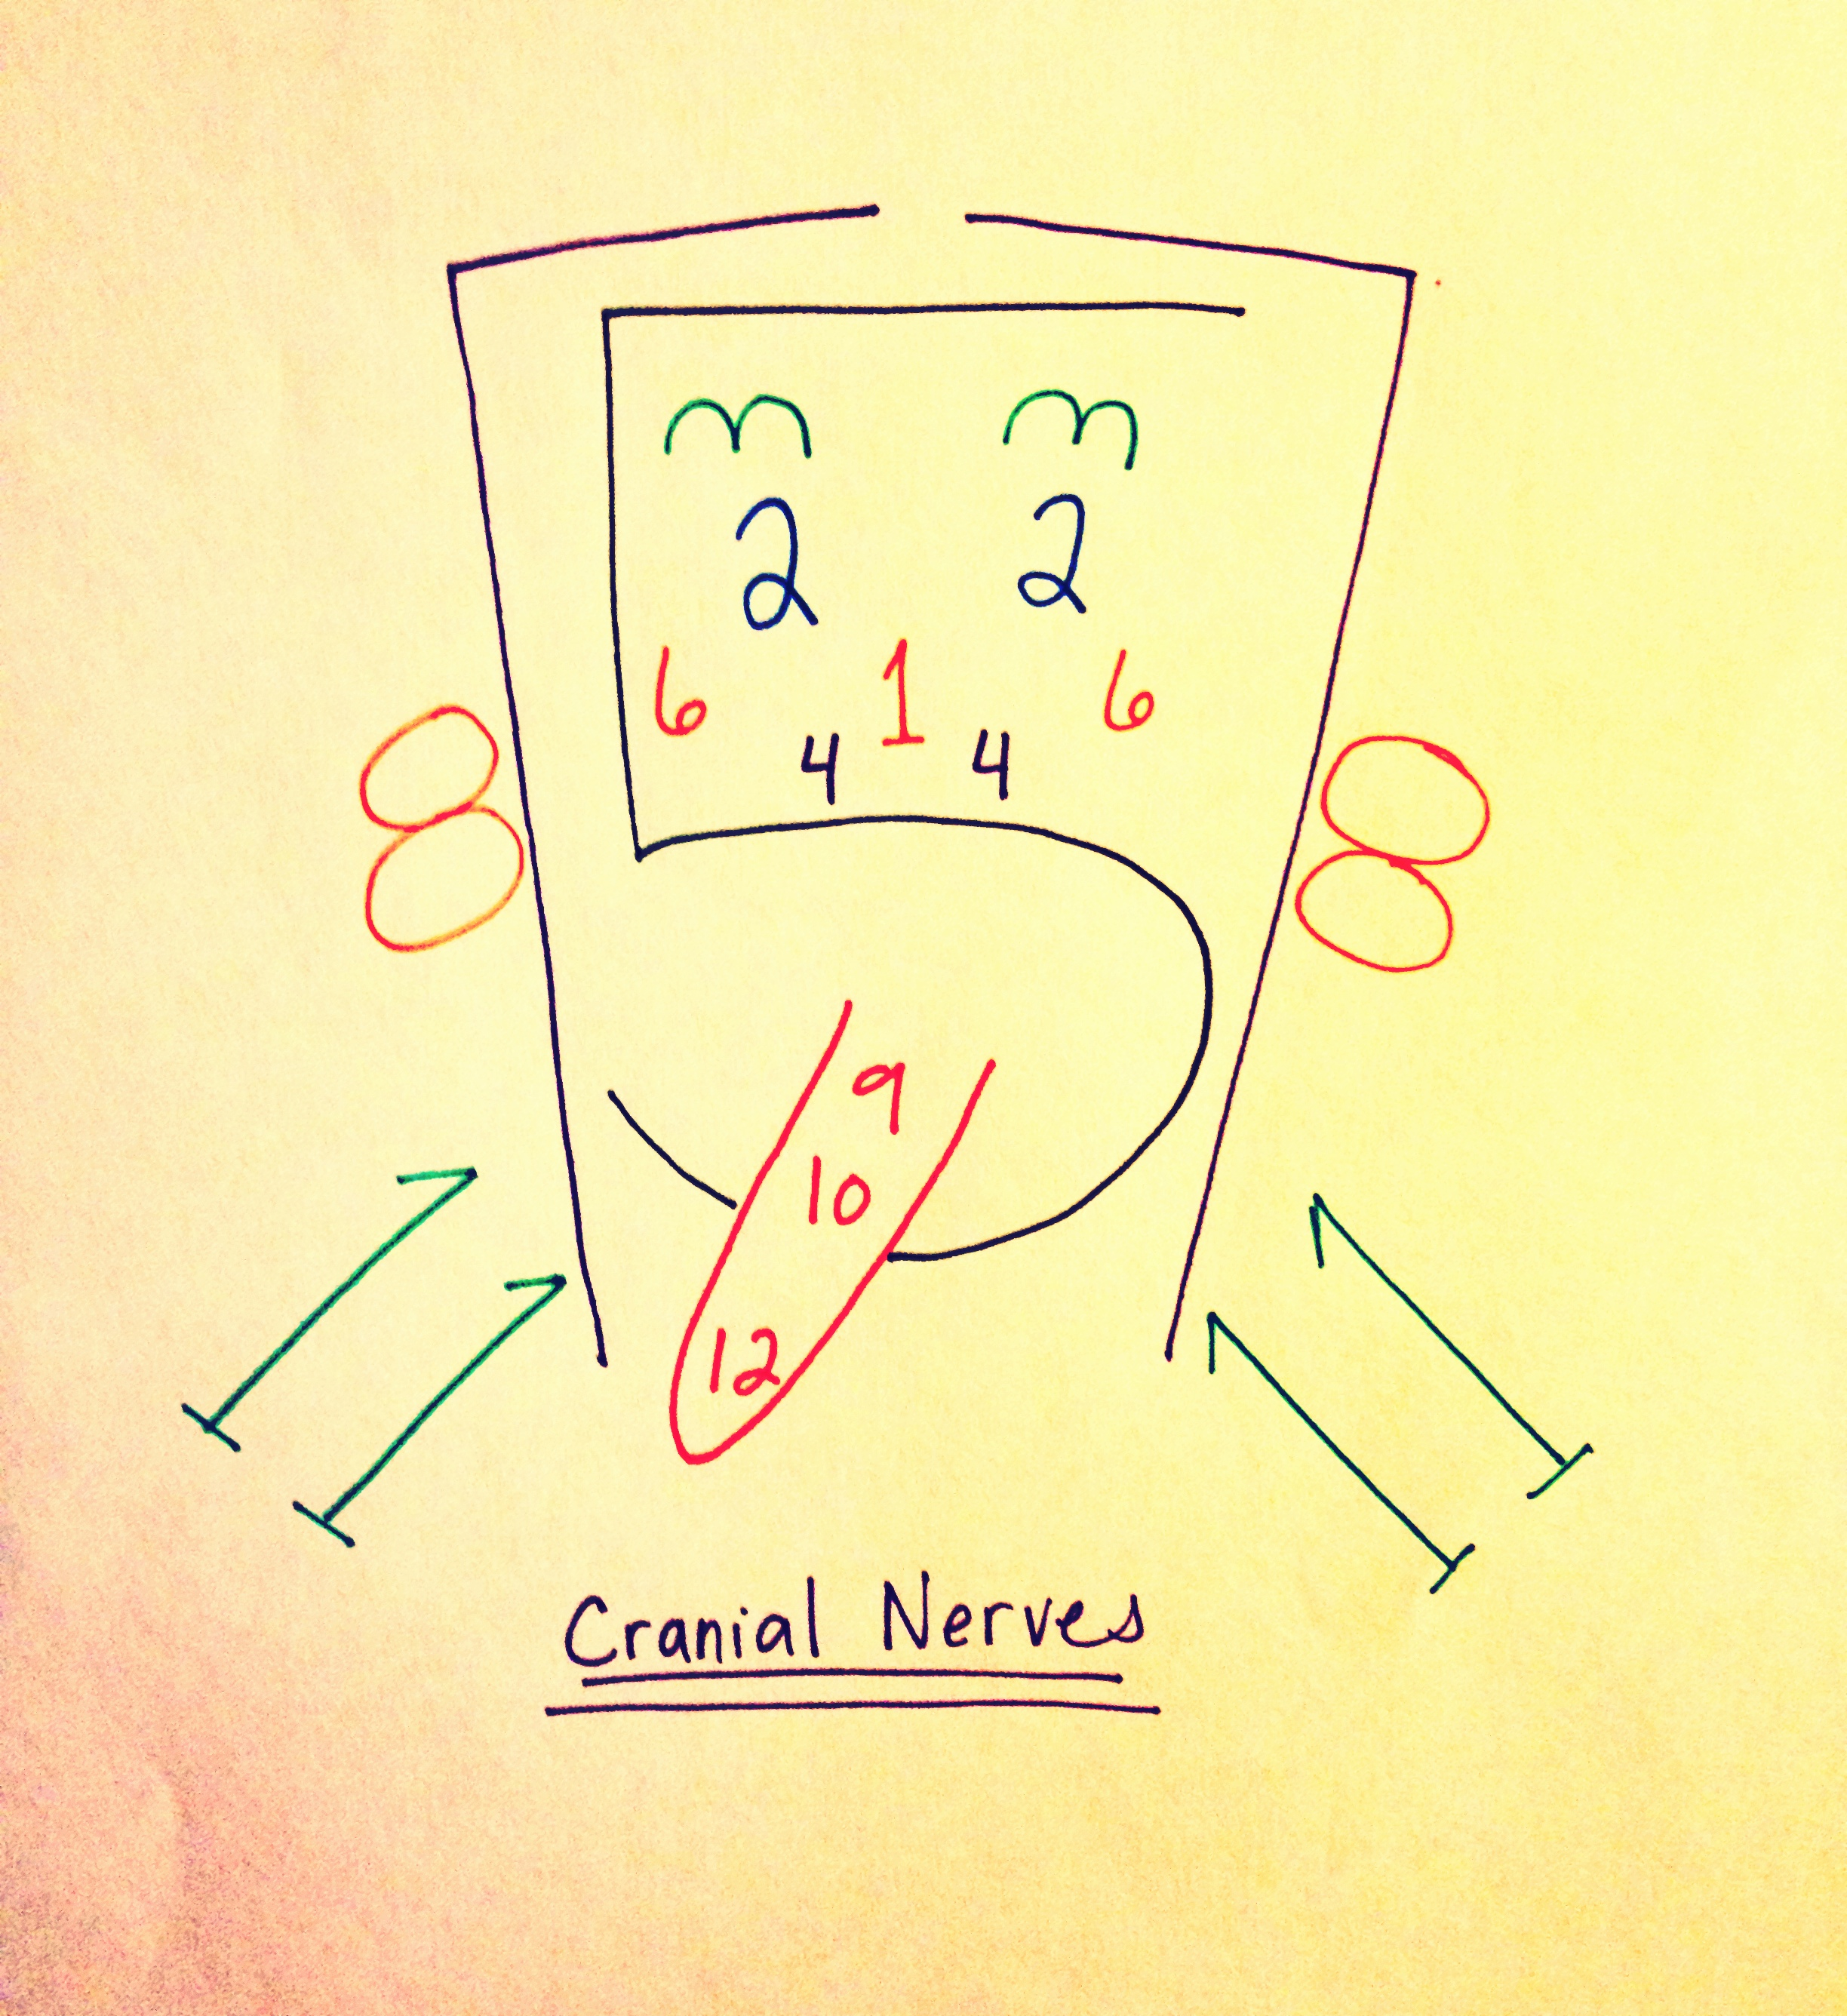 Cranial Nerve Face Diagram Pictures To Pin